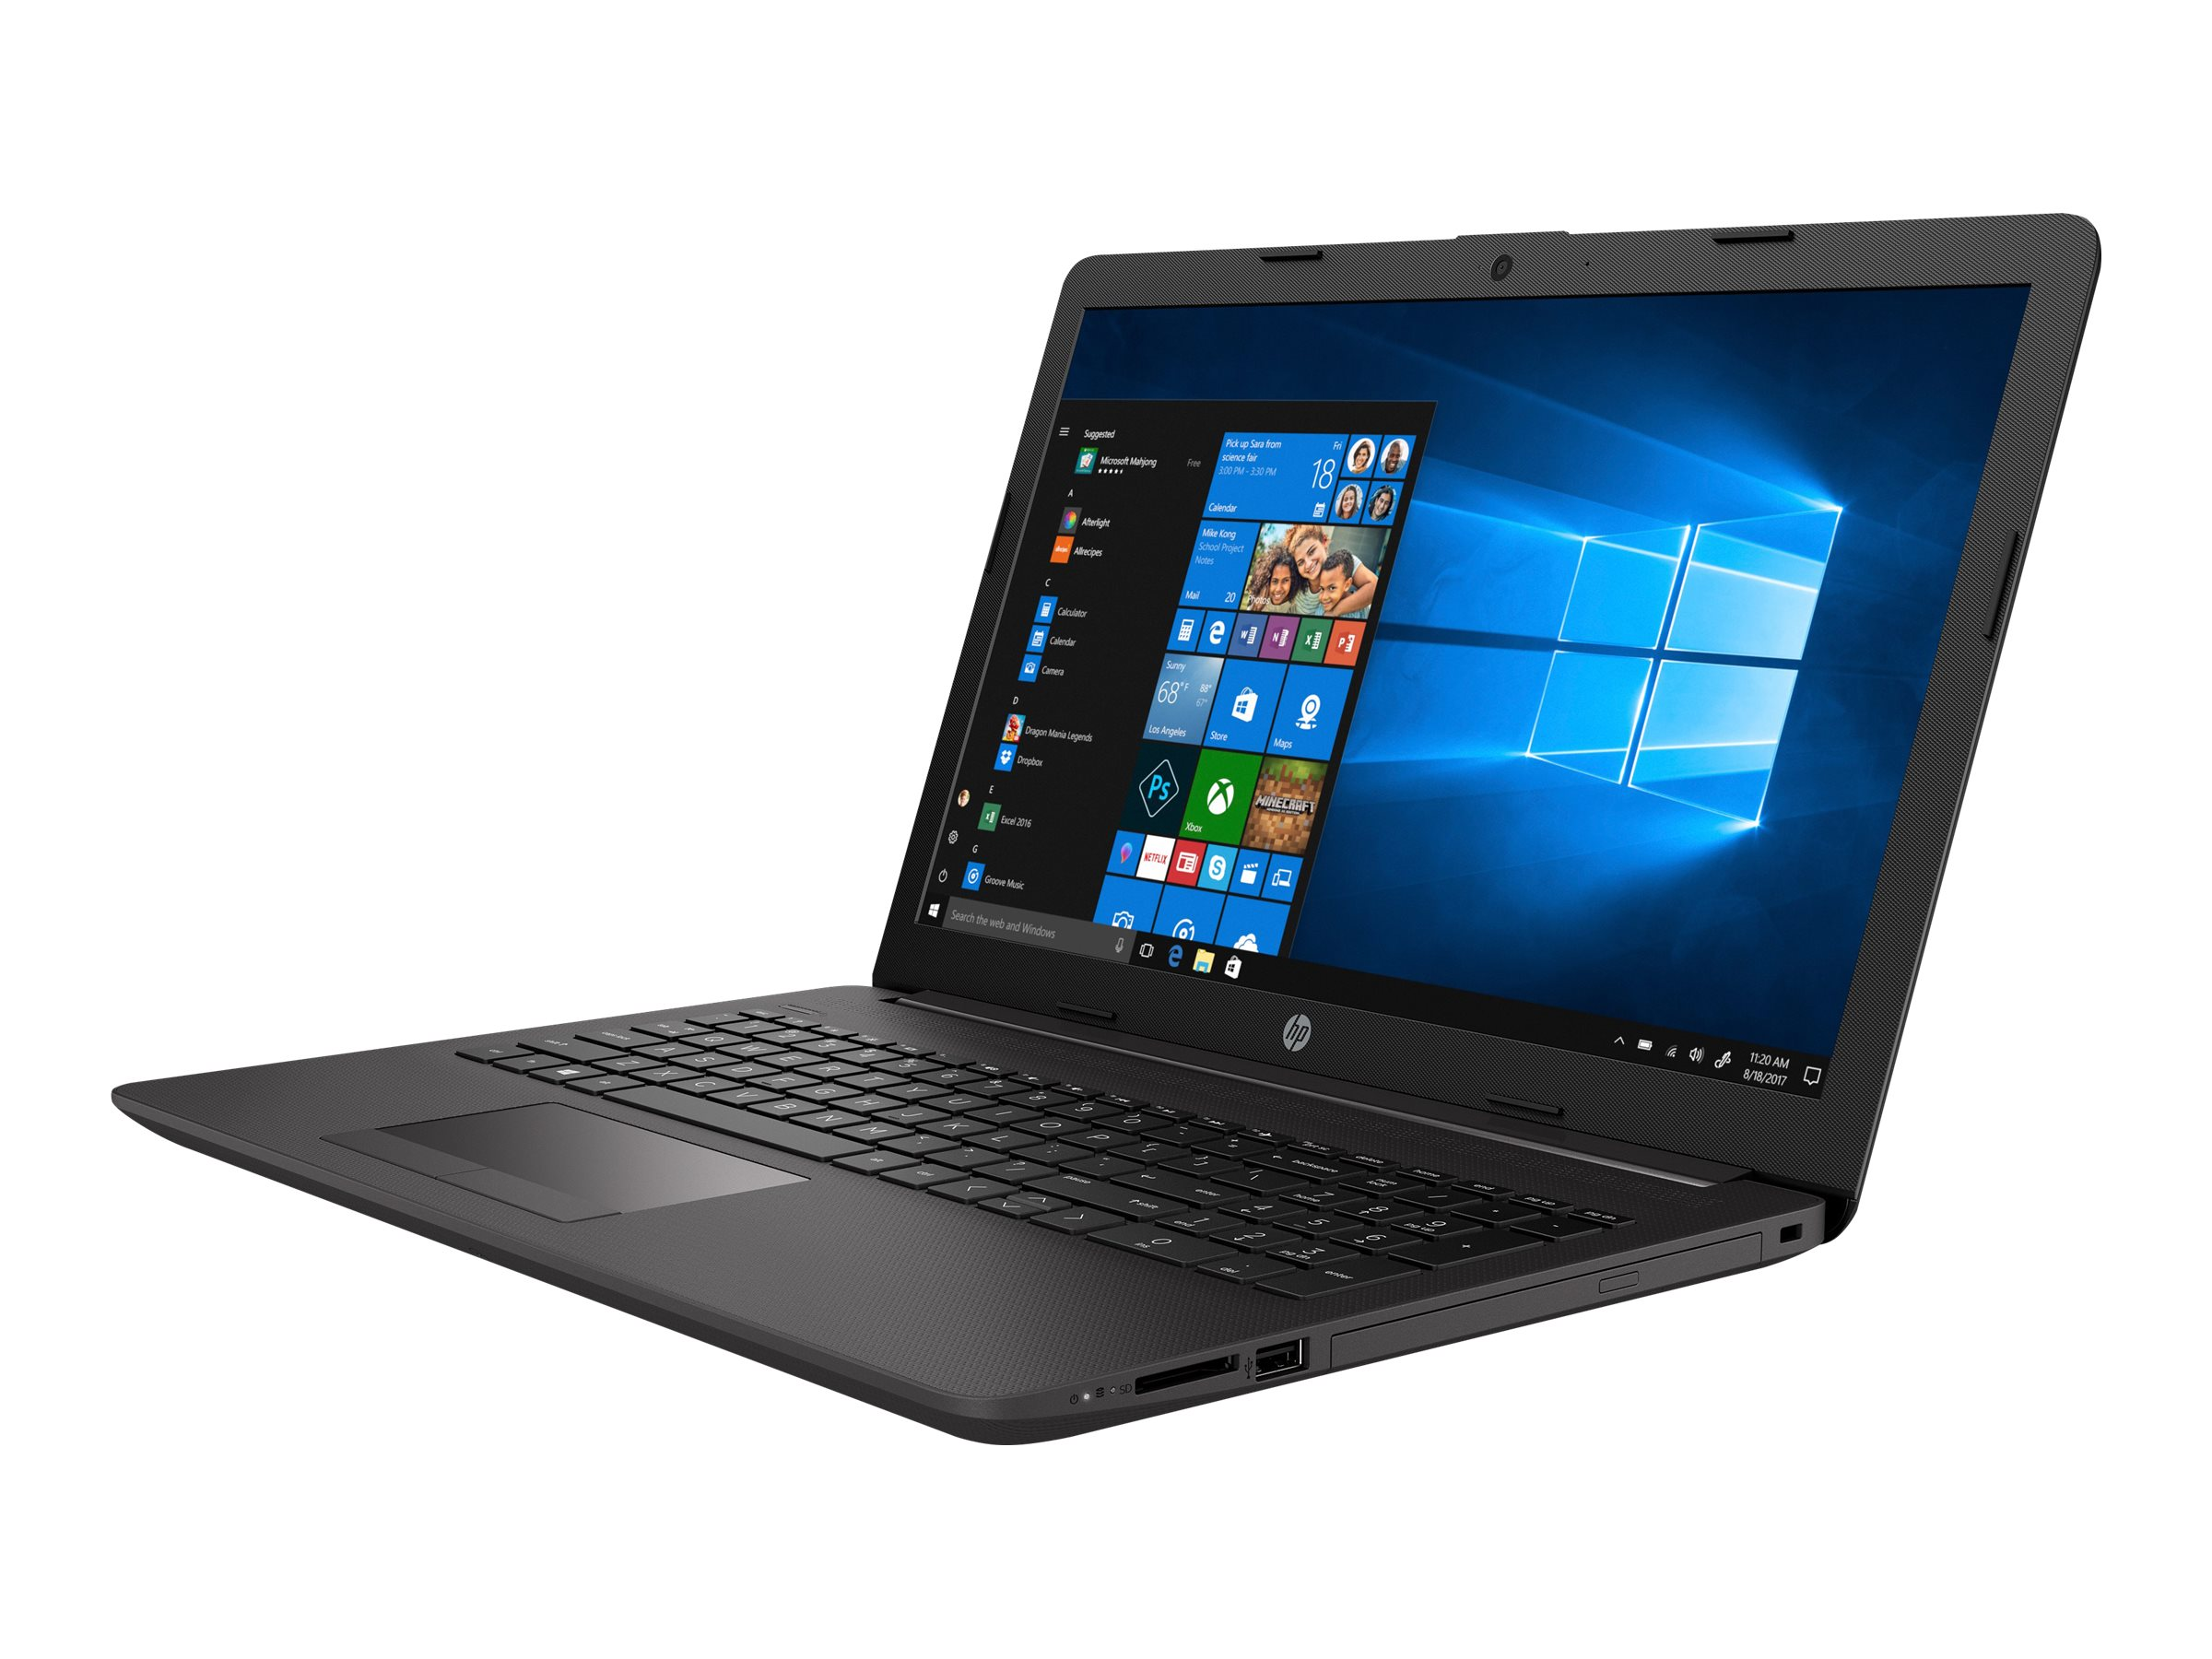 "HP 250 G7 - Core i3 1005G1 / 1.2 GHz - FreeDOS - 8 GB RAM - 256 GB SSD NVMe, HP Value - DVD-Writer - 39.6 cm (15.6"")"